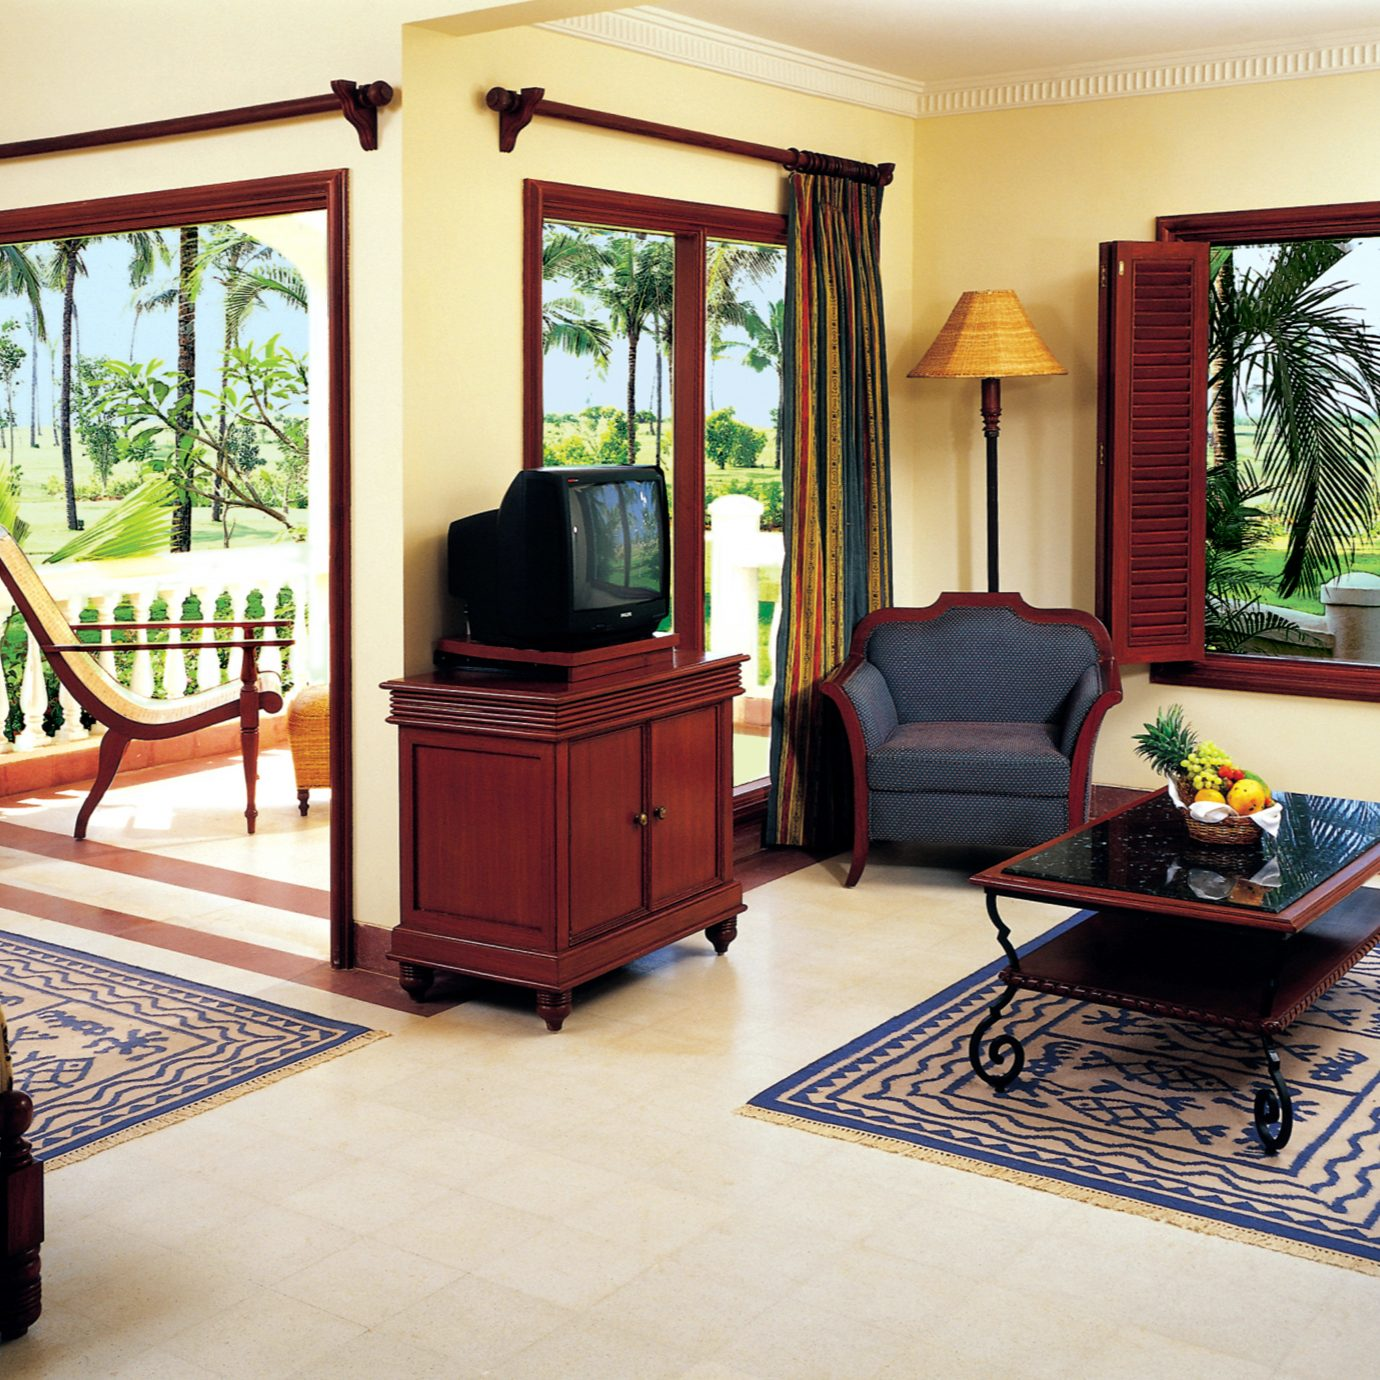 Bedroom Suite property home Villa cottage living room condominium mansion